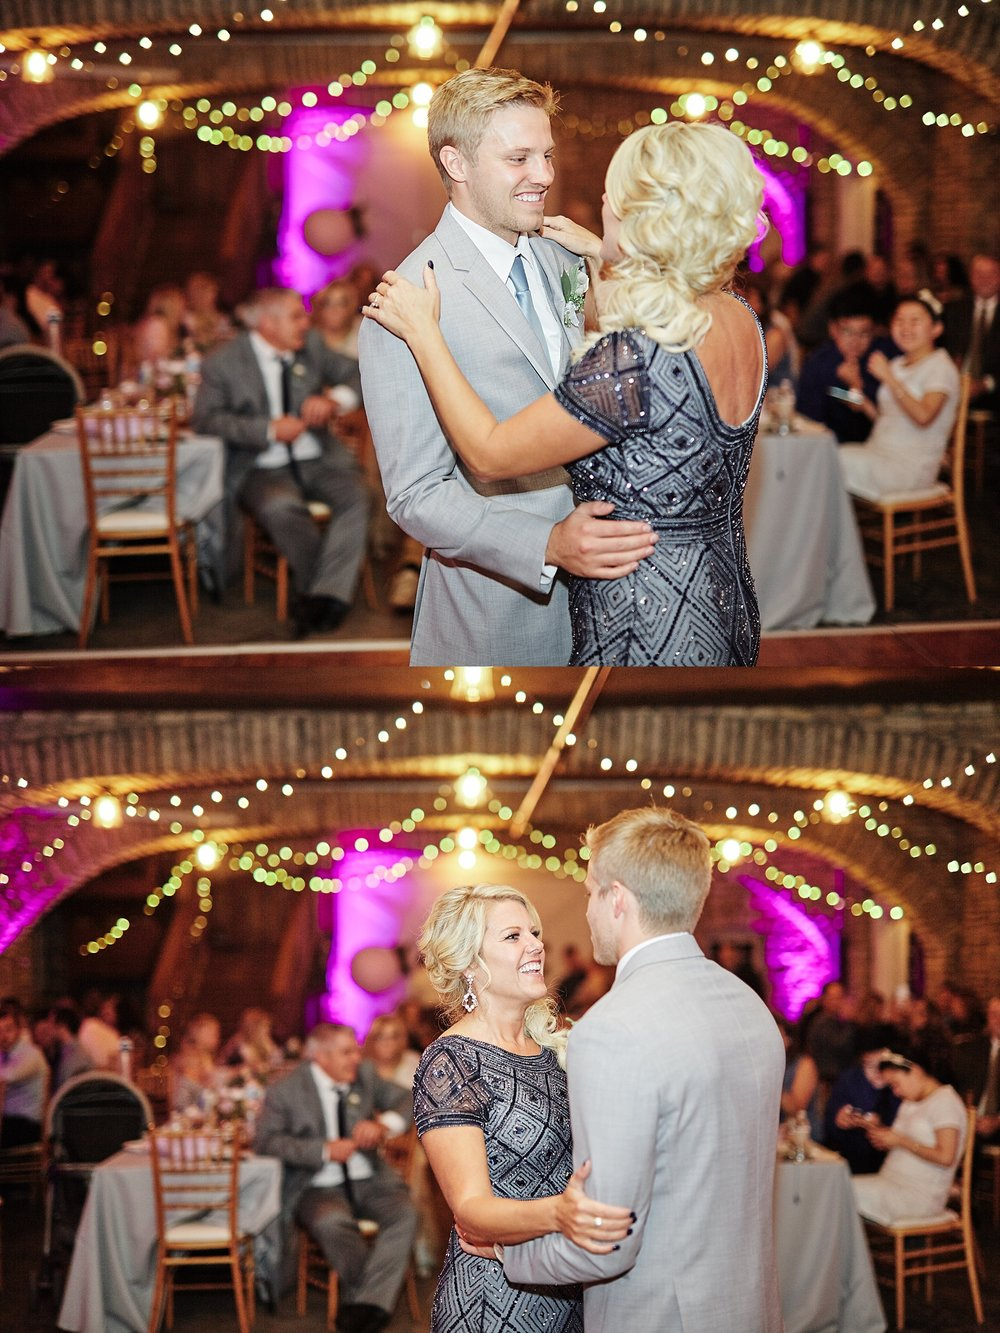 Maywood-Stone-Barn-Wedding-Rochester-Minnesota-Perry-James-Photo_0696.jpg